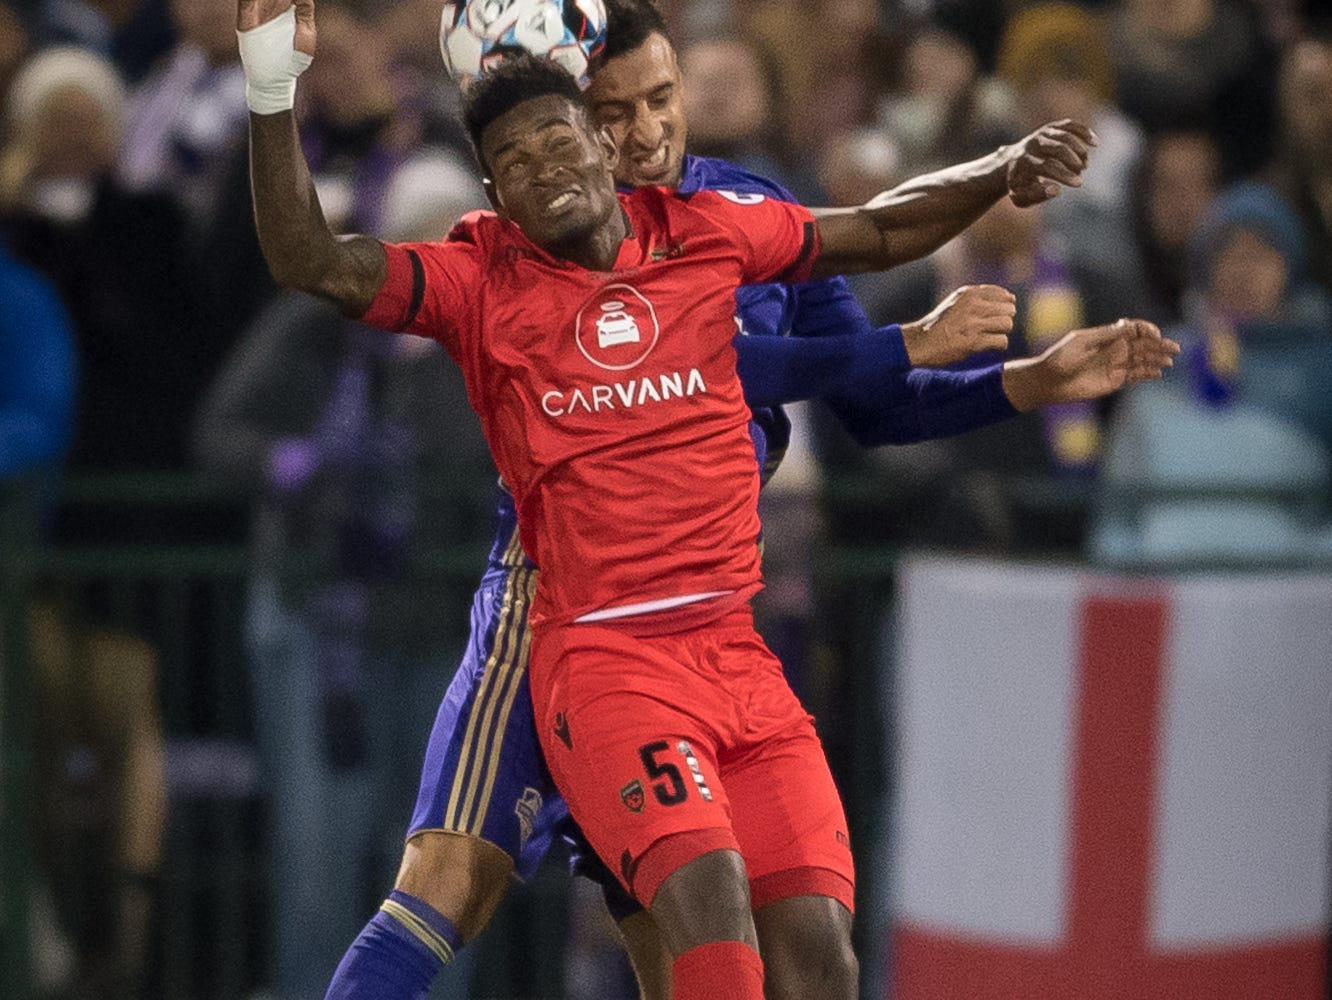 Louisville City FC defender Paco Craig (5) collides with Phoenix Rising FC forward Kevaughn Frater (51) during the USL Cup final played at Lynn Stadium on the campus of the University of Louisville, Louisville, Ky., Thursday, Nov., 8, 2018.